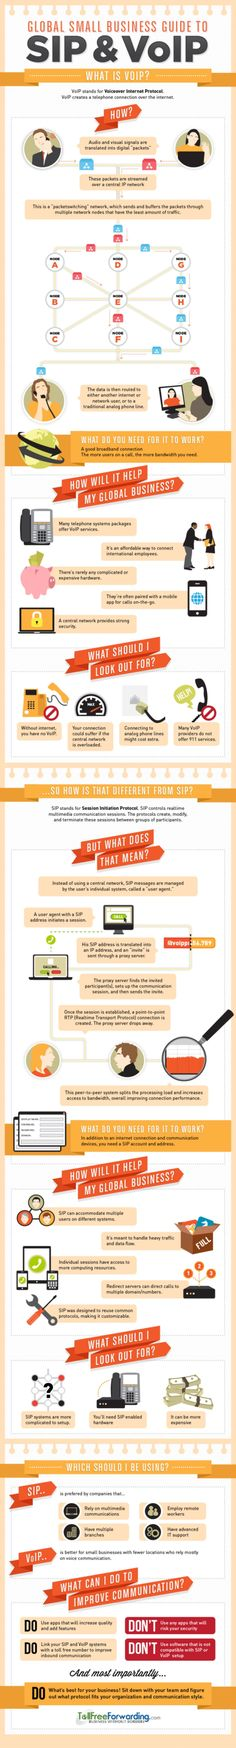 AWESOME infographic explaining VoIP & SIP, and even its impact on businesses. Definitely recommend checking it out.